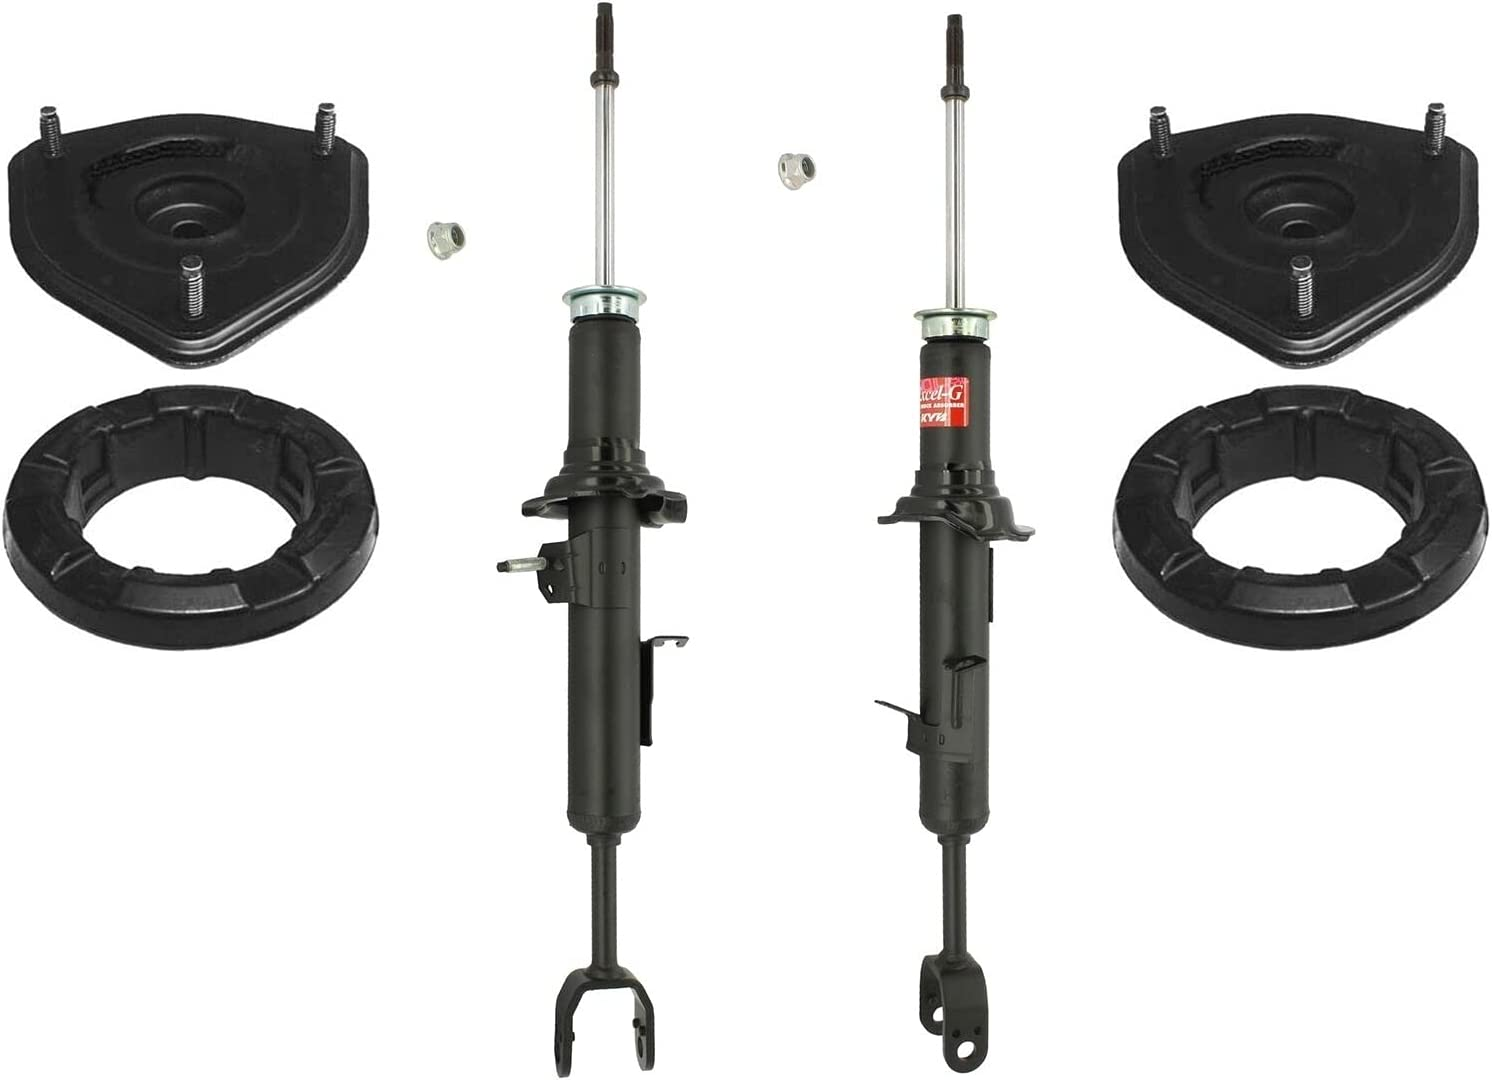 Directly managed store Front Max 56% OFF Suspension Struts Mounts kit Compatible with Infiniti G35